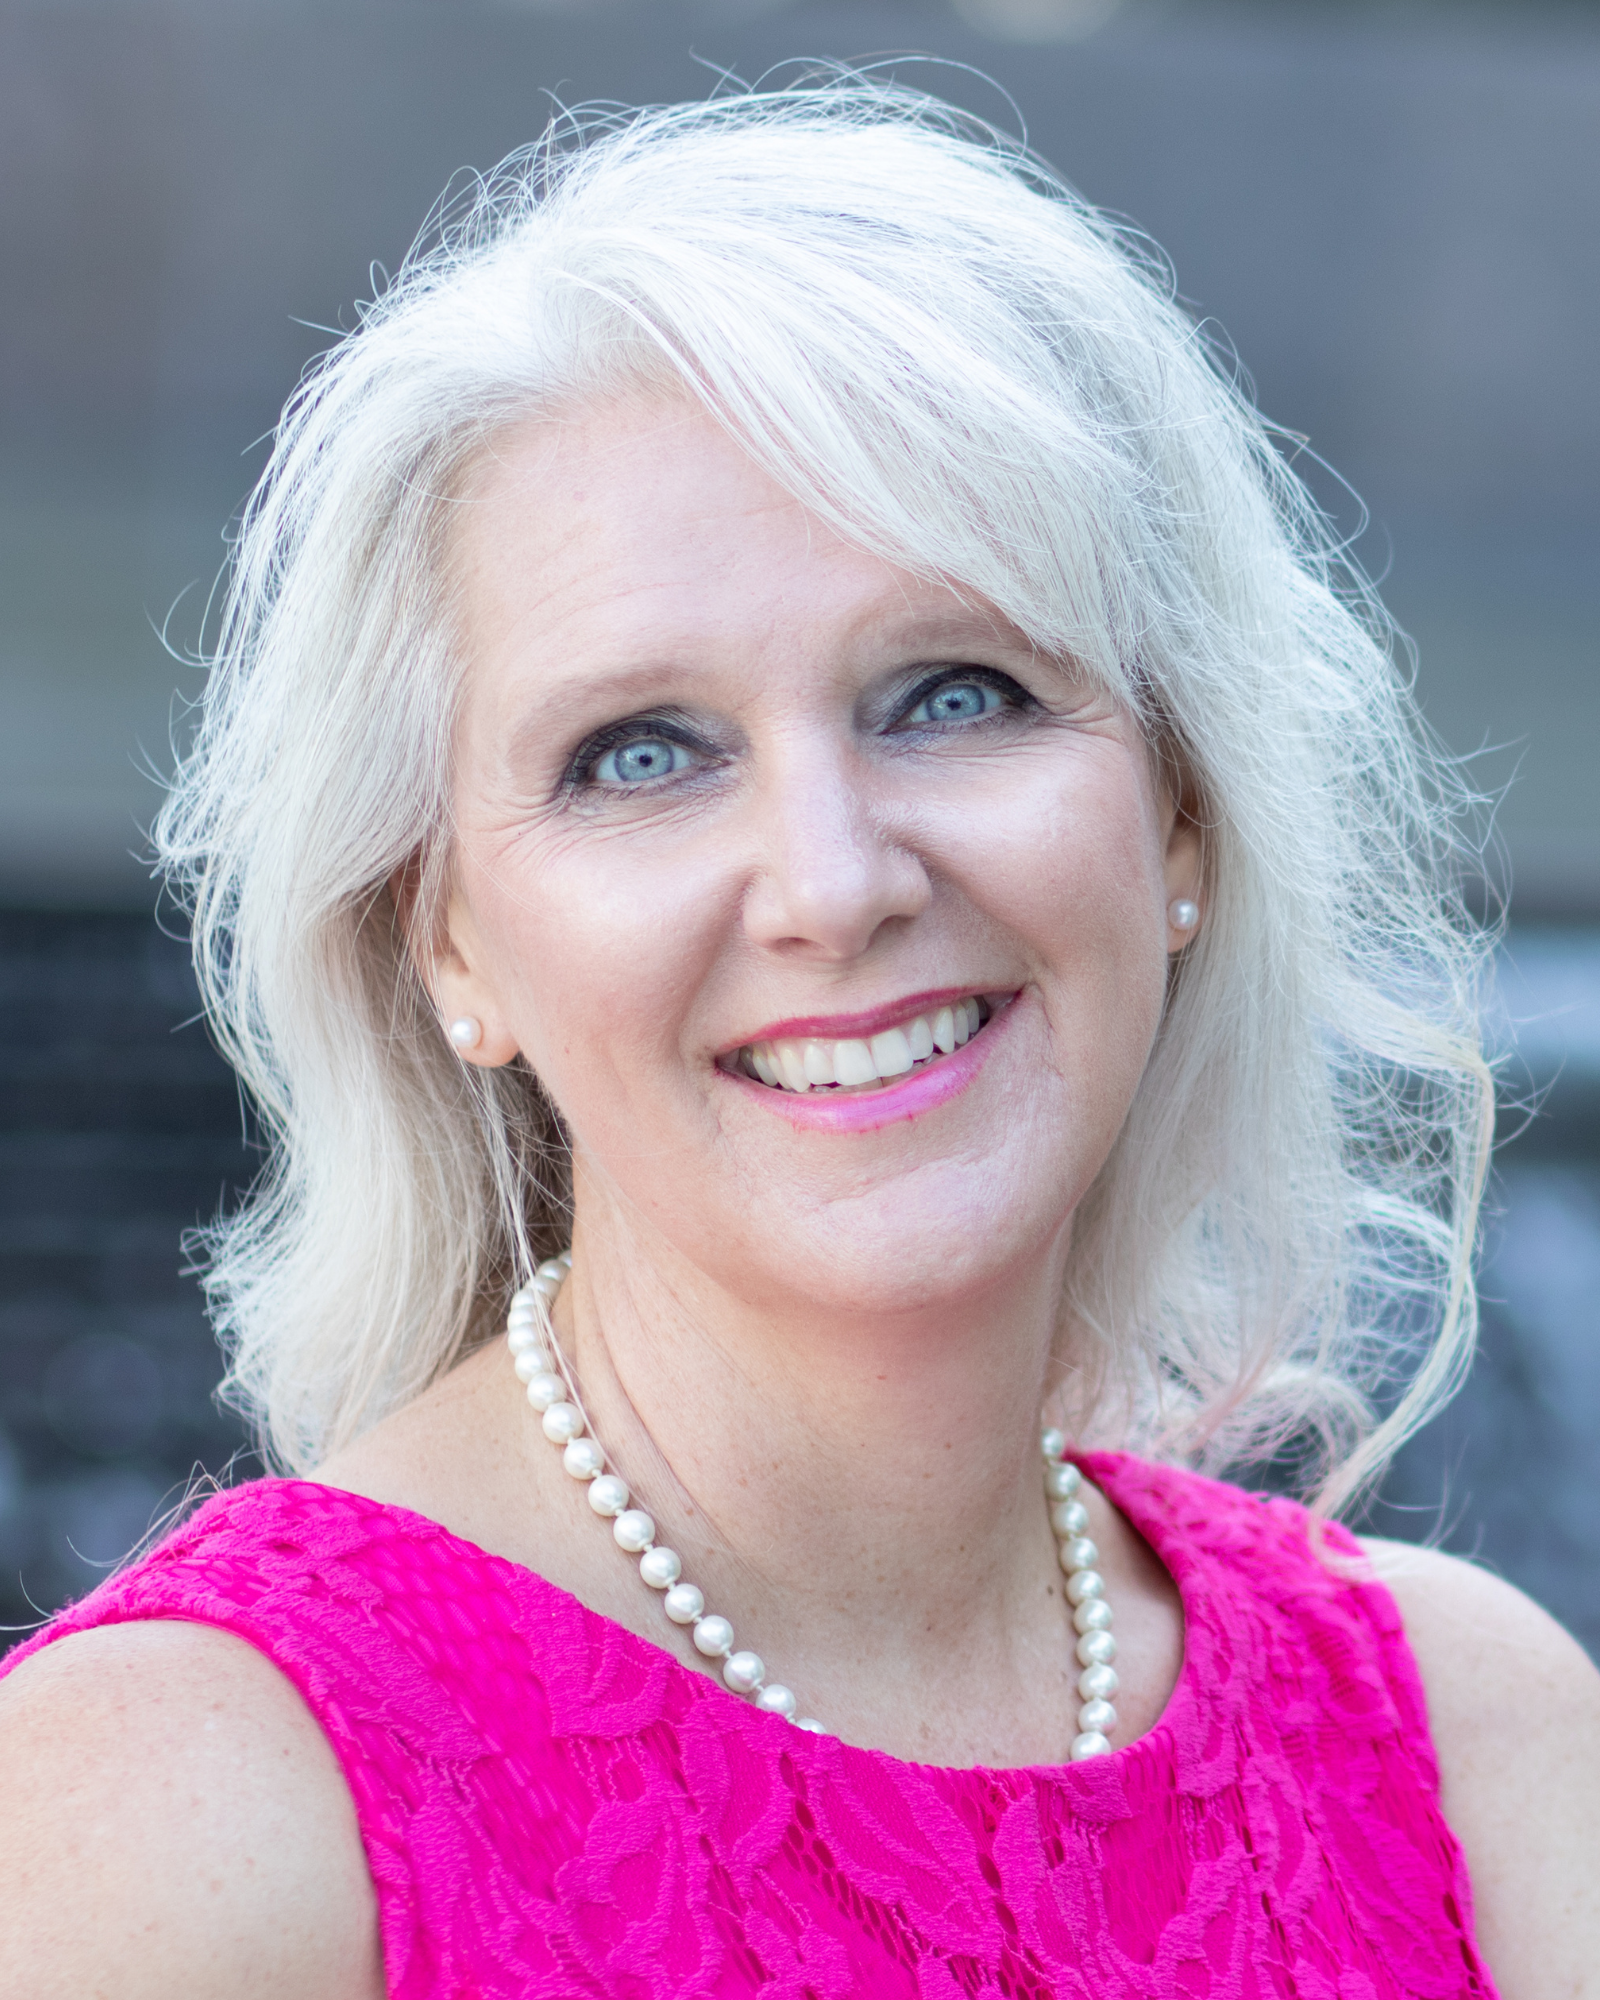 Shawna Cale: A Speaker, Author, Physical Therapist, Life Coach and Also Holistic Health Practitioner